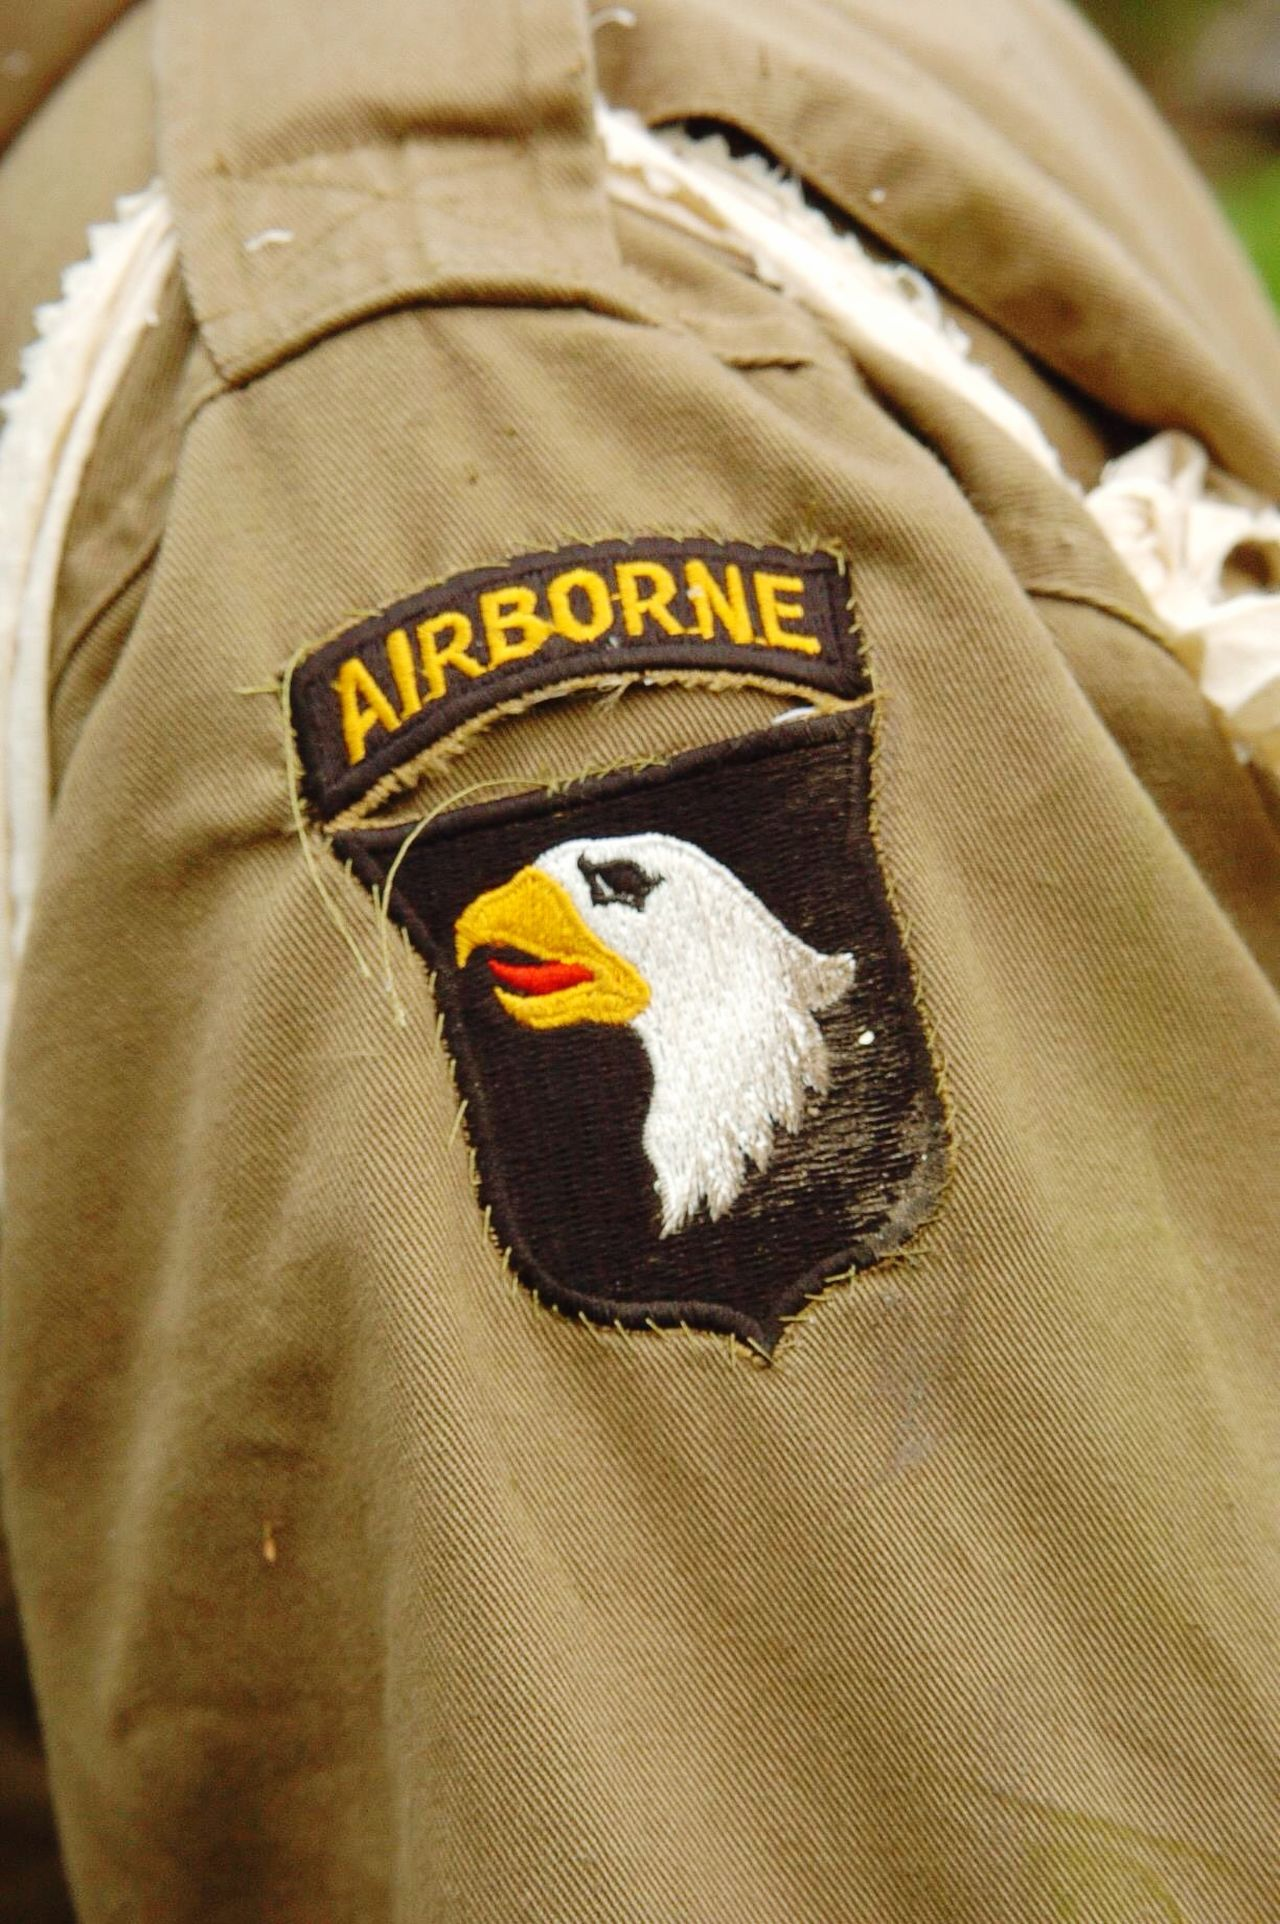 Airborne Paratroopers Dday Reenactment mylife infantry 101stairborne Airborne All The Way